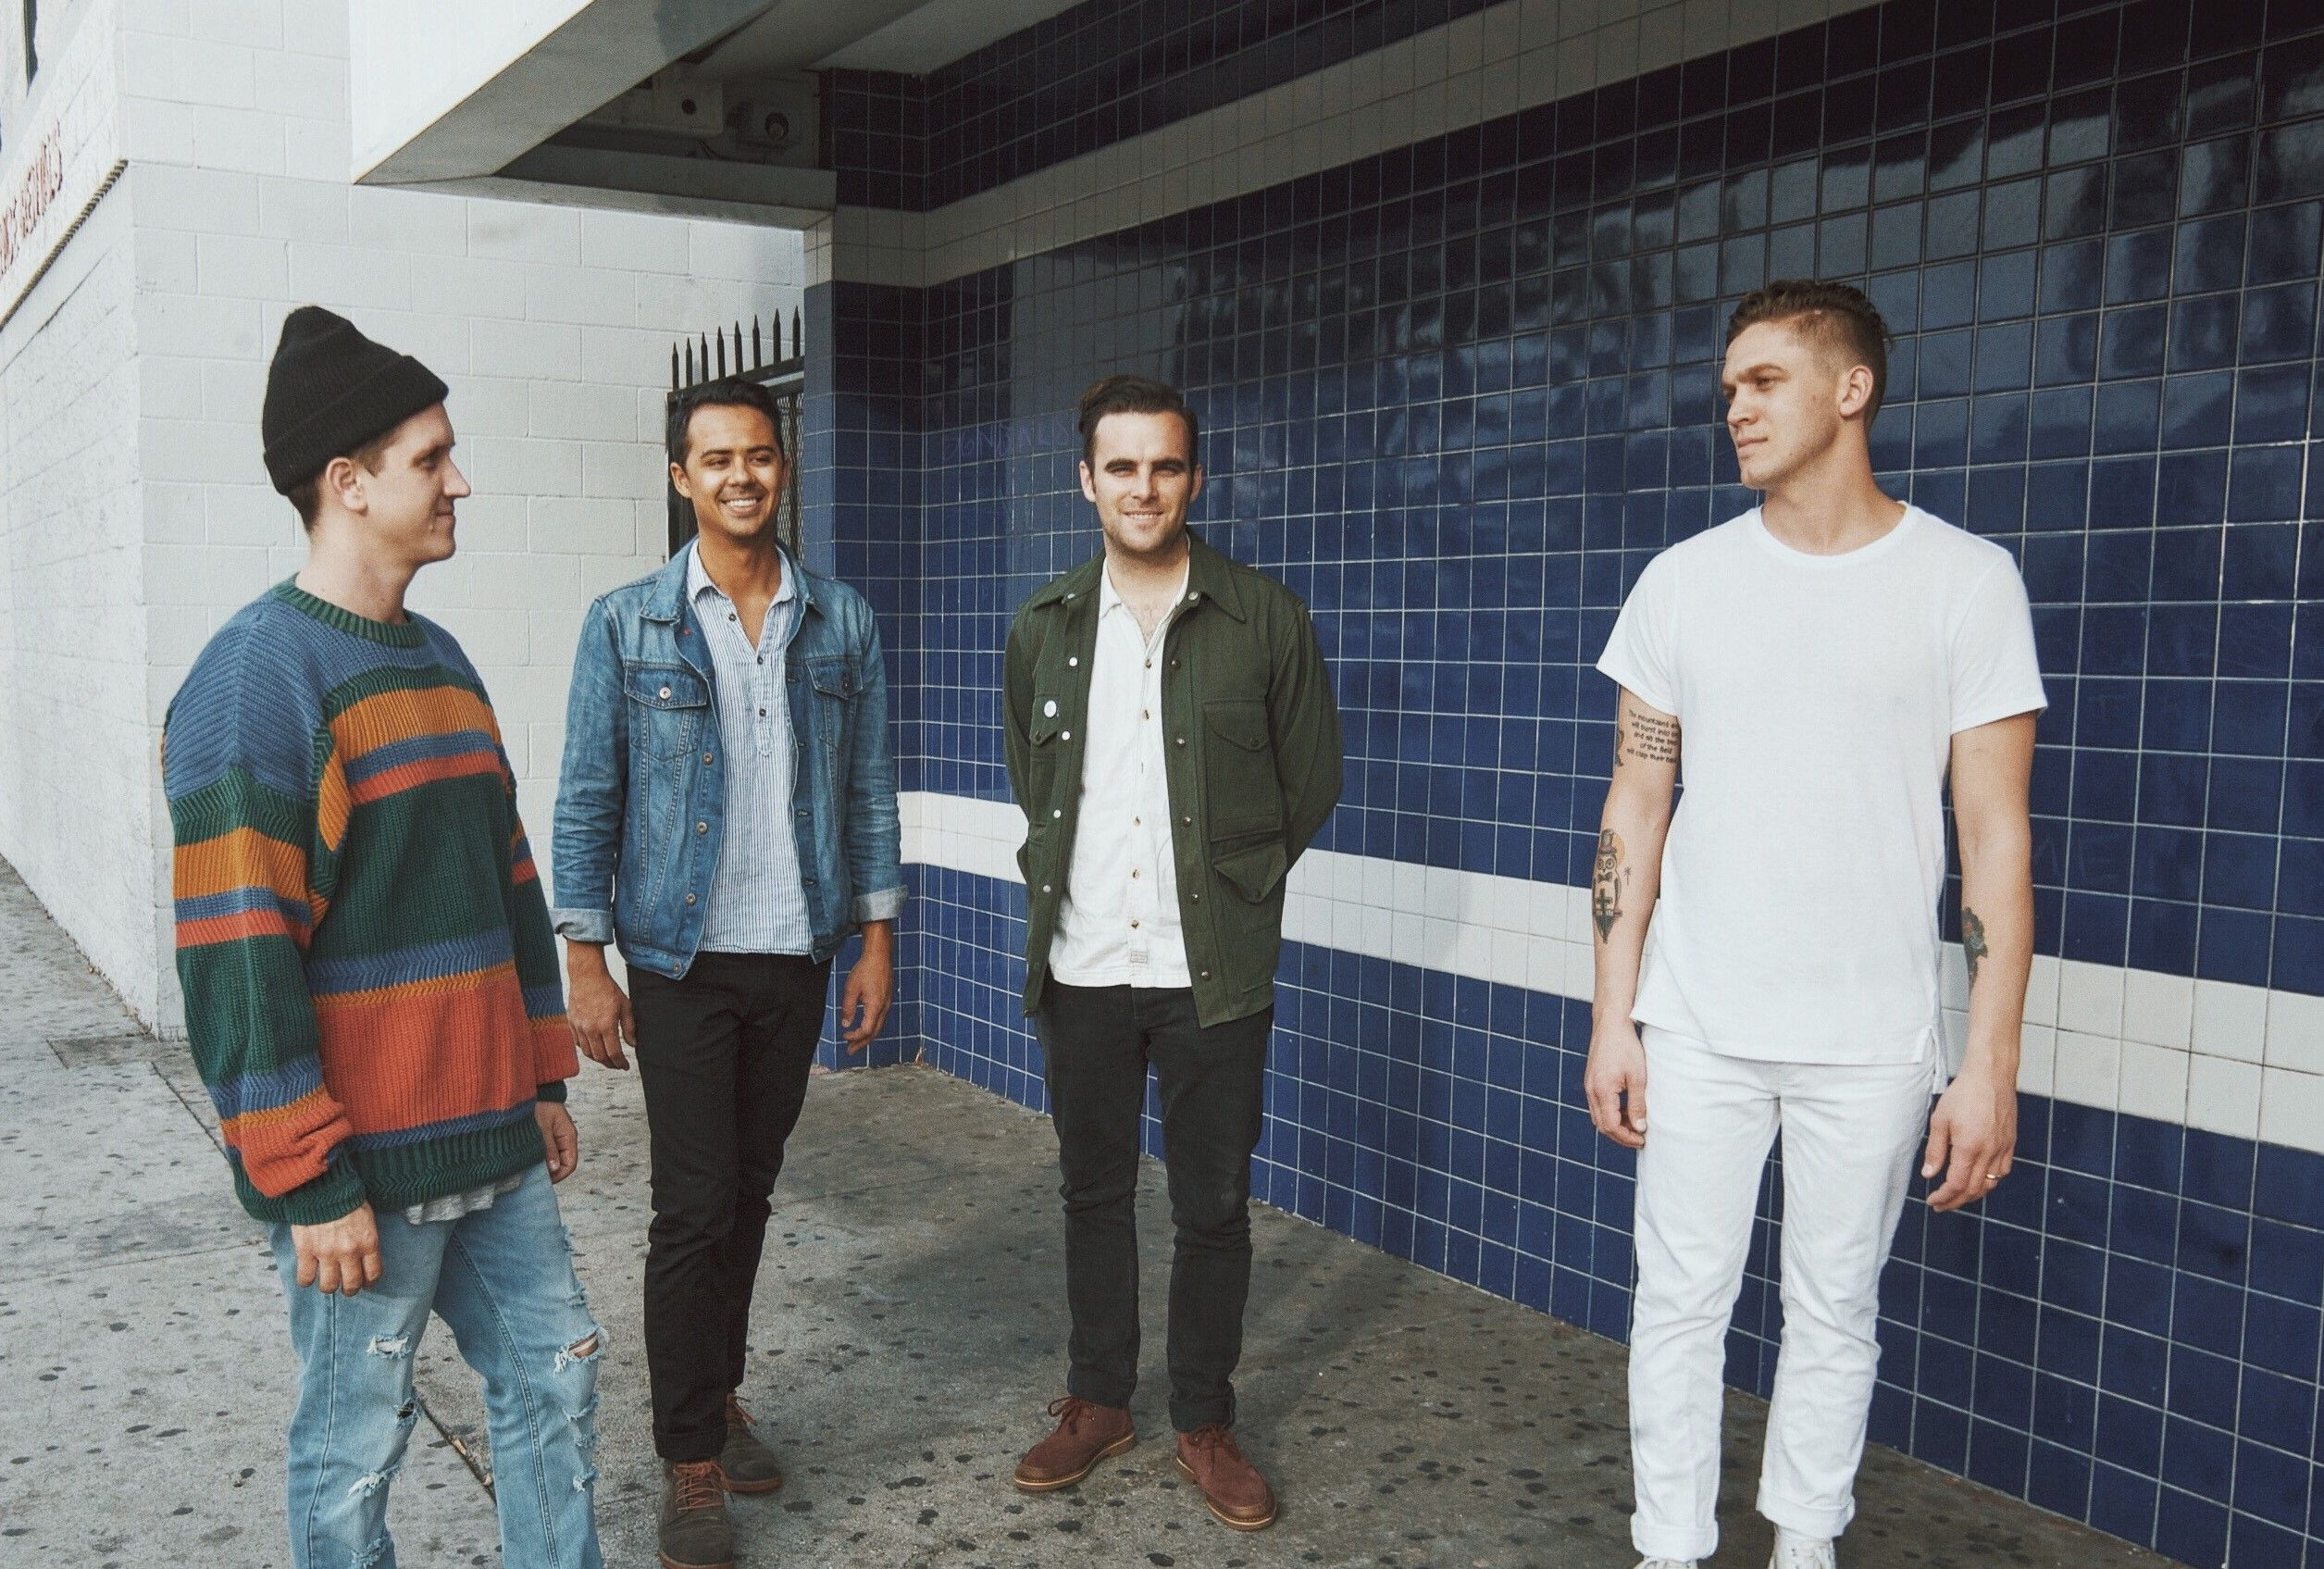 """PREMIERE: Watch Hawai give stunning live performance of """"All Night"""""""